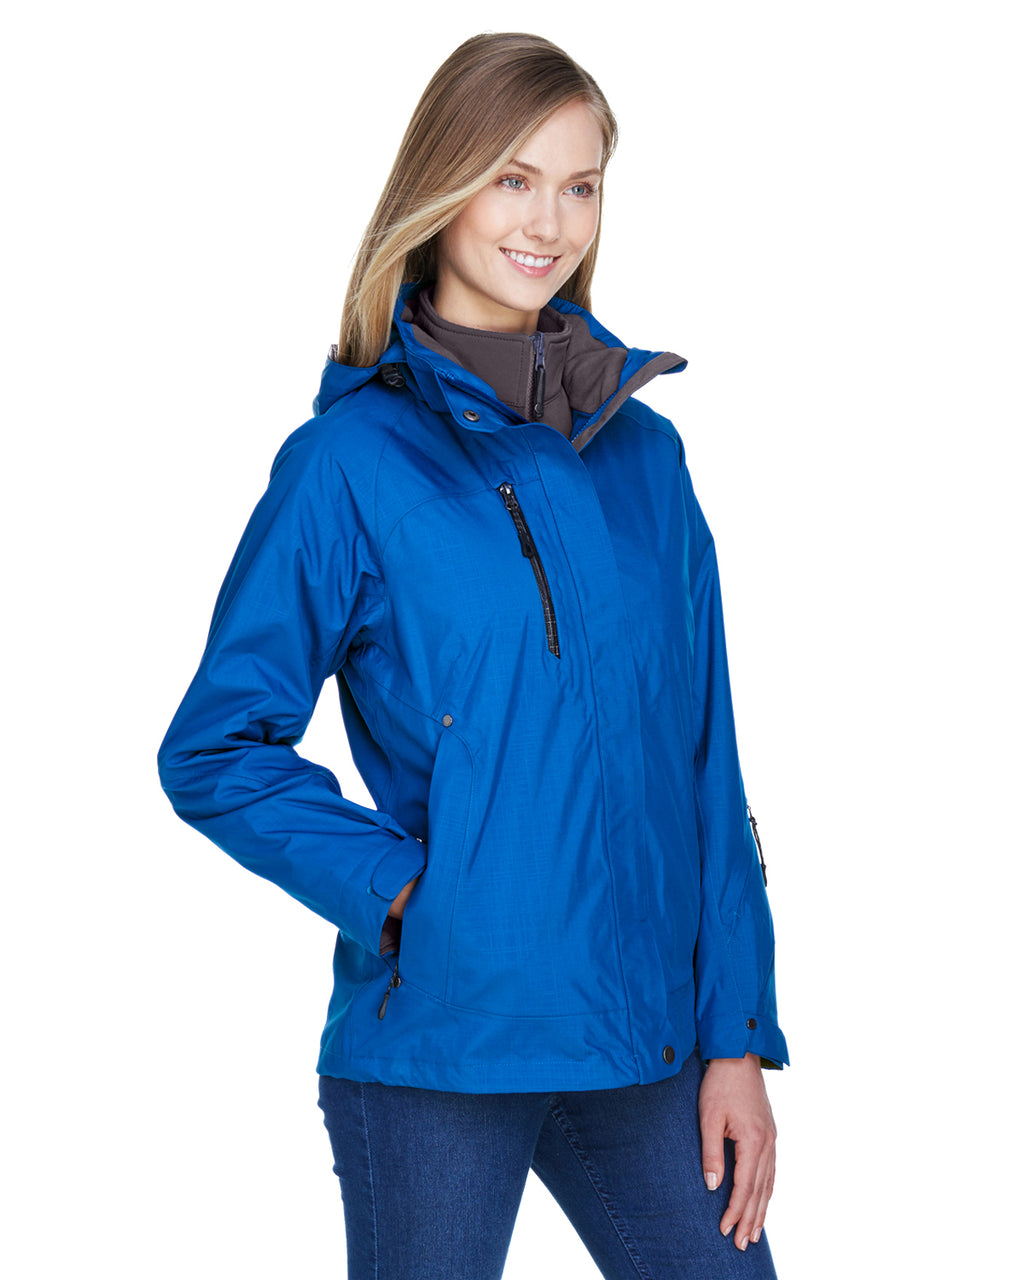 78178 - North End Ladies' Caprice 3-in-1 Jacket with Soft Shell Liner